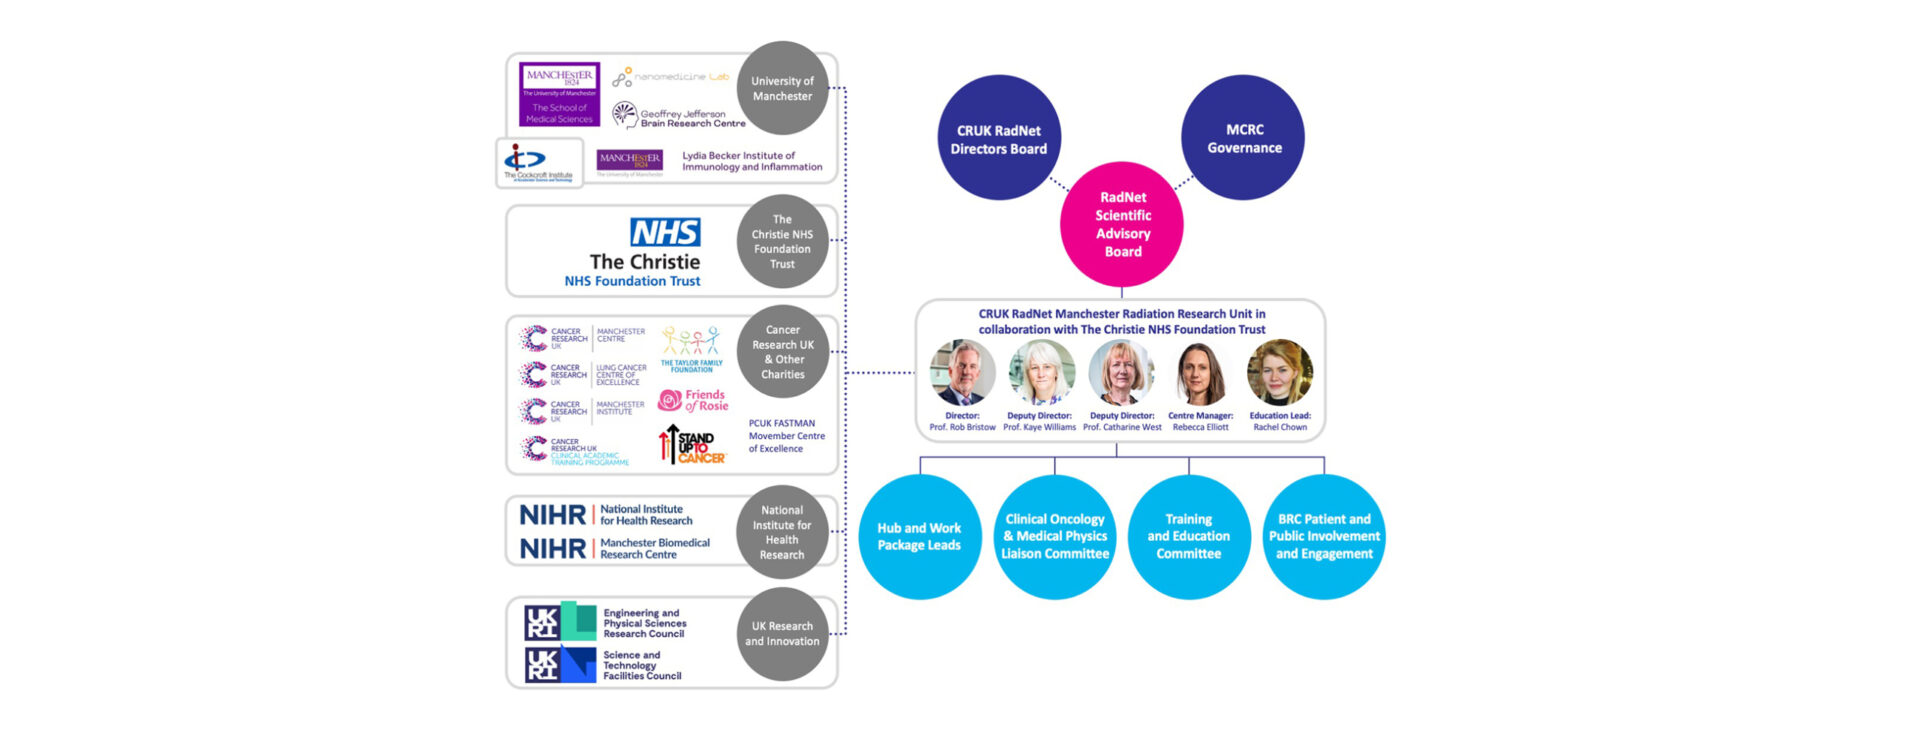 Governance chart of RadNet Manchester. Level 1 supports the hub and work package leads; Clinical oncology and medical physics committee; Training and education committee; BRC patient and public involvement and engagement. Level 2 is the CRUK RadNet Manchester leadership team: Director Rob Bristow, Deputy Directors Kaye Williams and Catharine West, Centre manager Rebecca Elliott, and Education Lead Rachel Chown. Level 3 is external governance and includes the International Advisory board, MCRC Governance and CRUK RadNet Directors board. Supporting the Leadership at level 2 are various partner organisations including the University of Manchester, The Christie NHS Foundation Trust, CRUK and other charities, NIHR and UKRI.